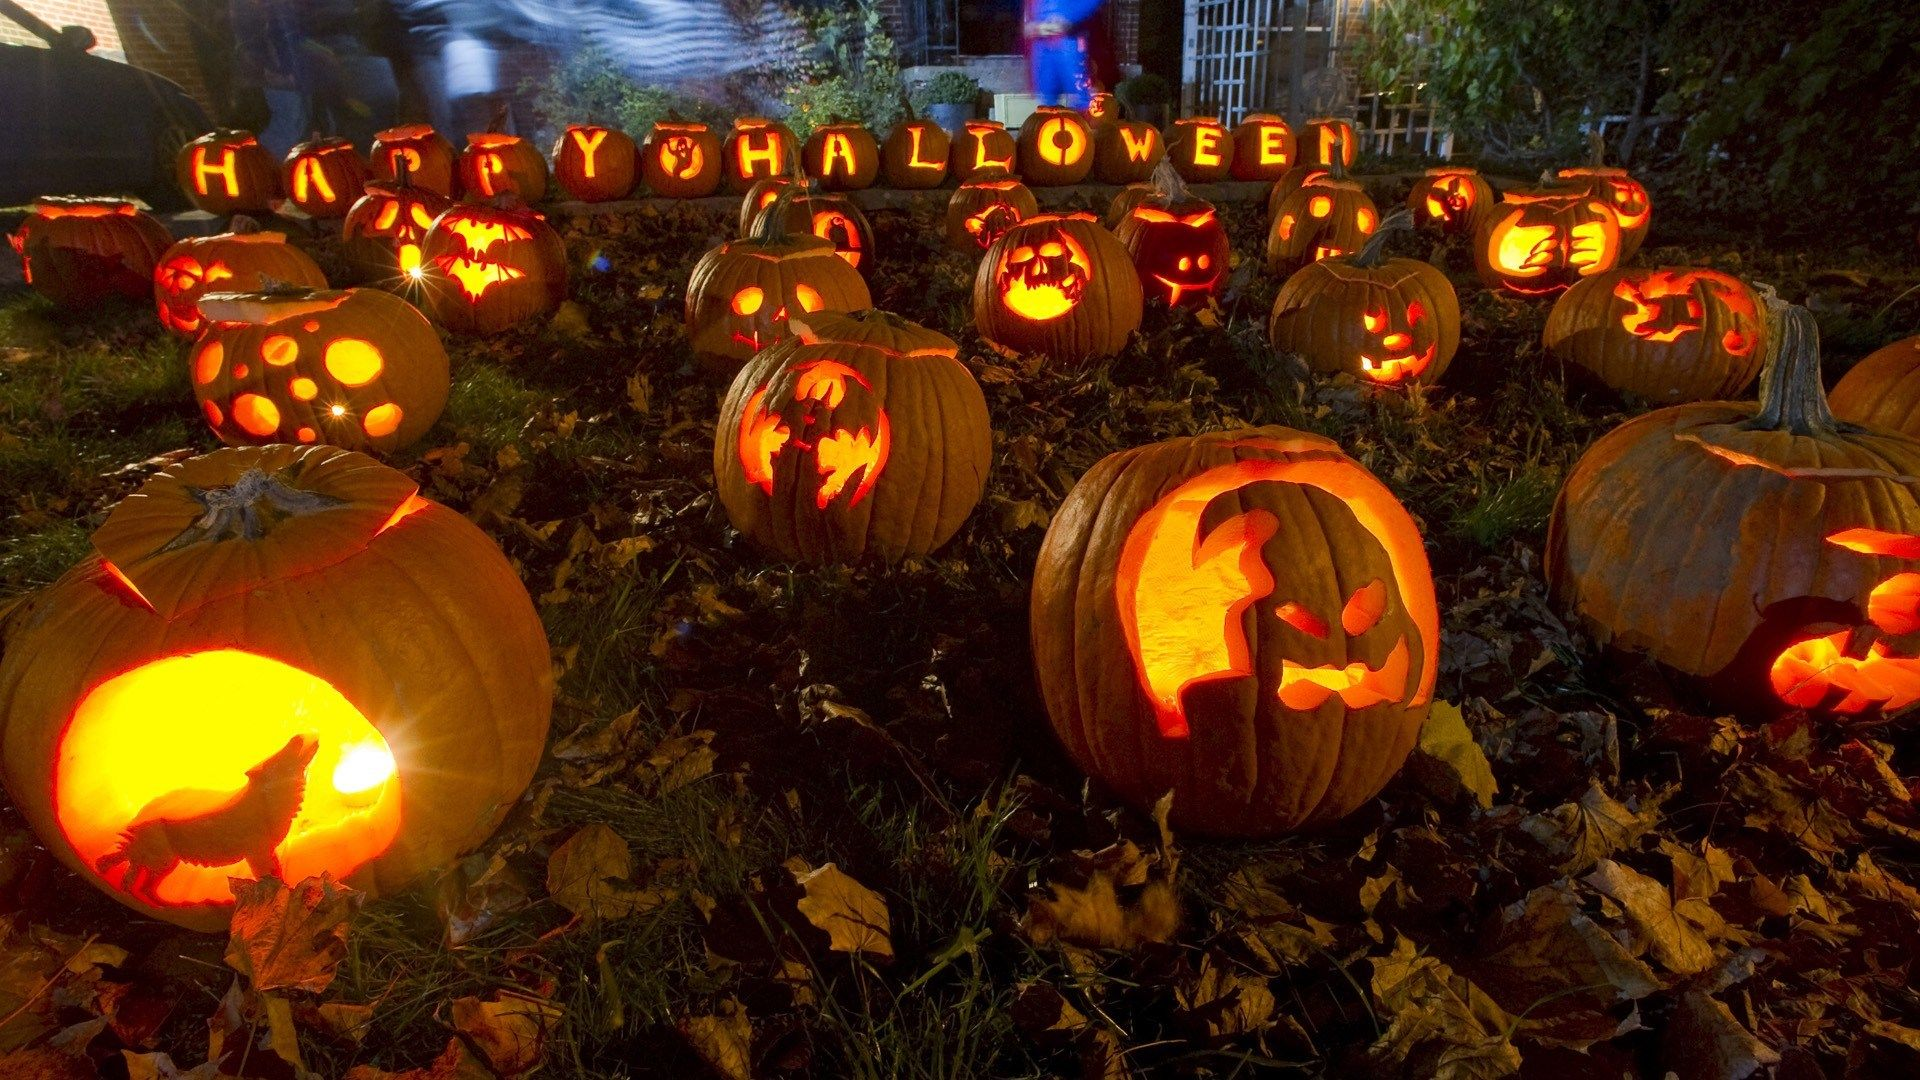 1920x1080 Halloween Hd Wallpapers 1080p Windows Jpg 523 Kb